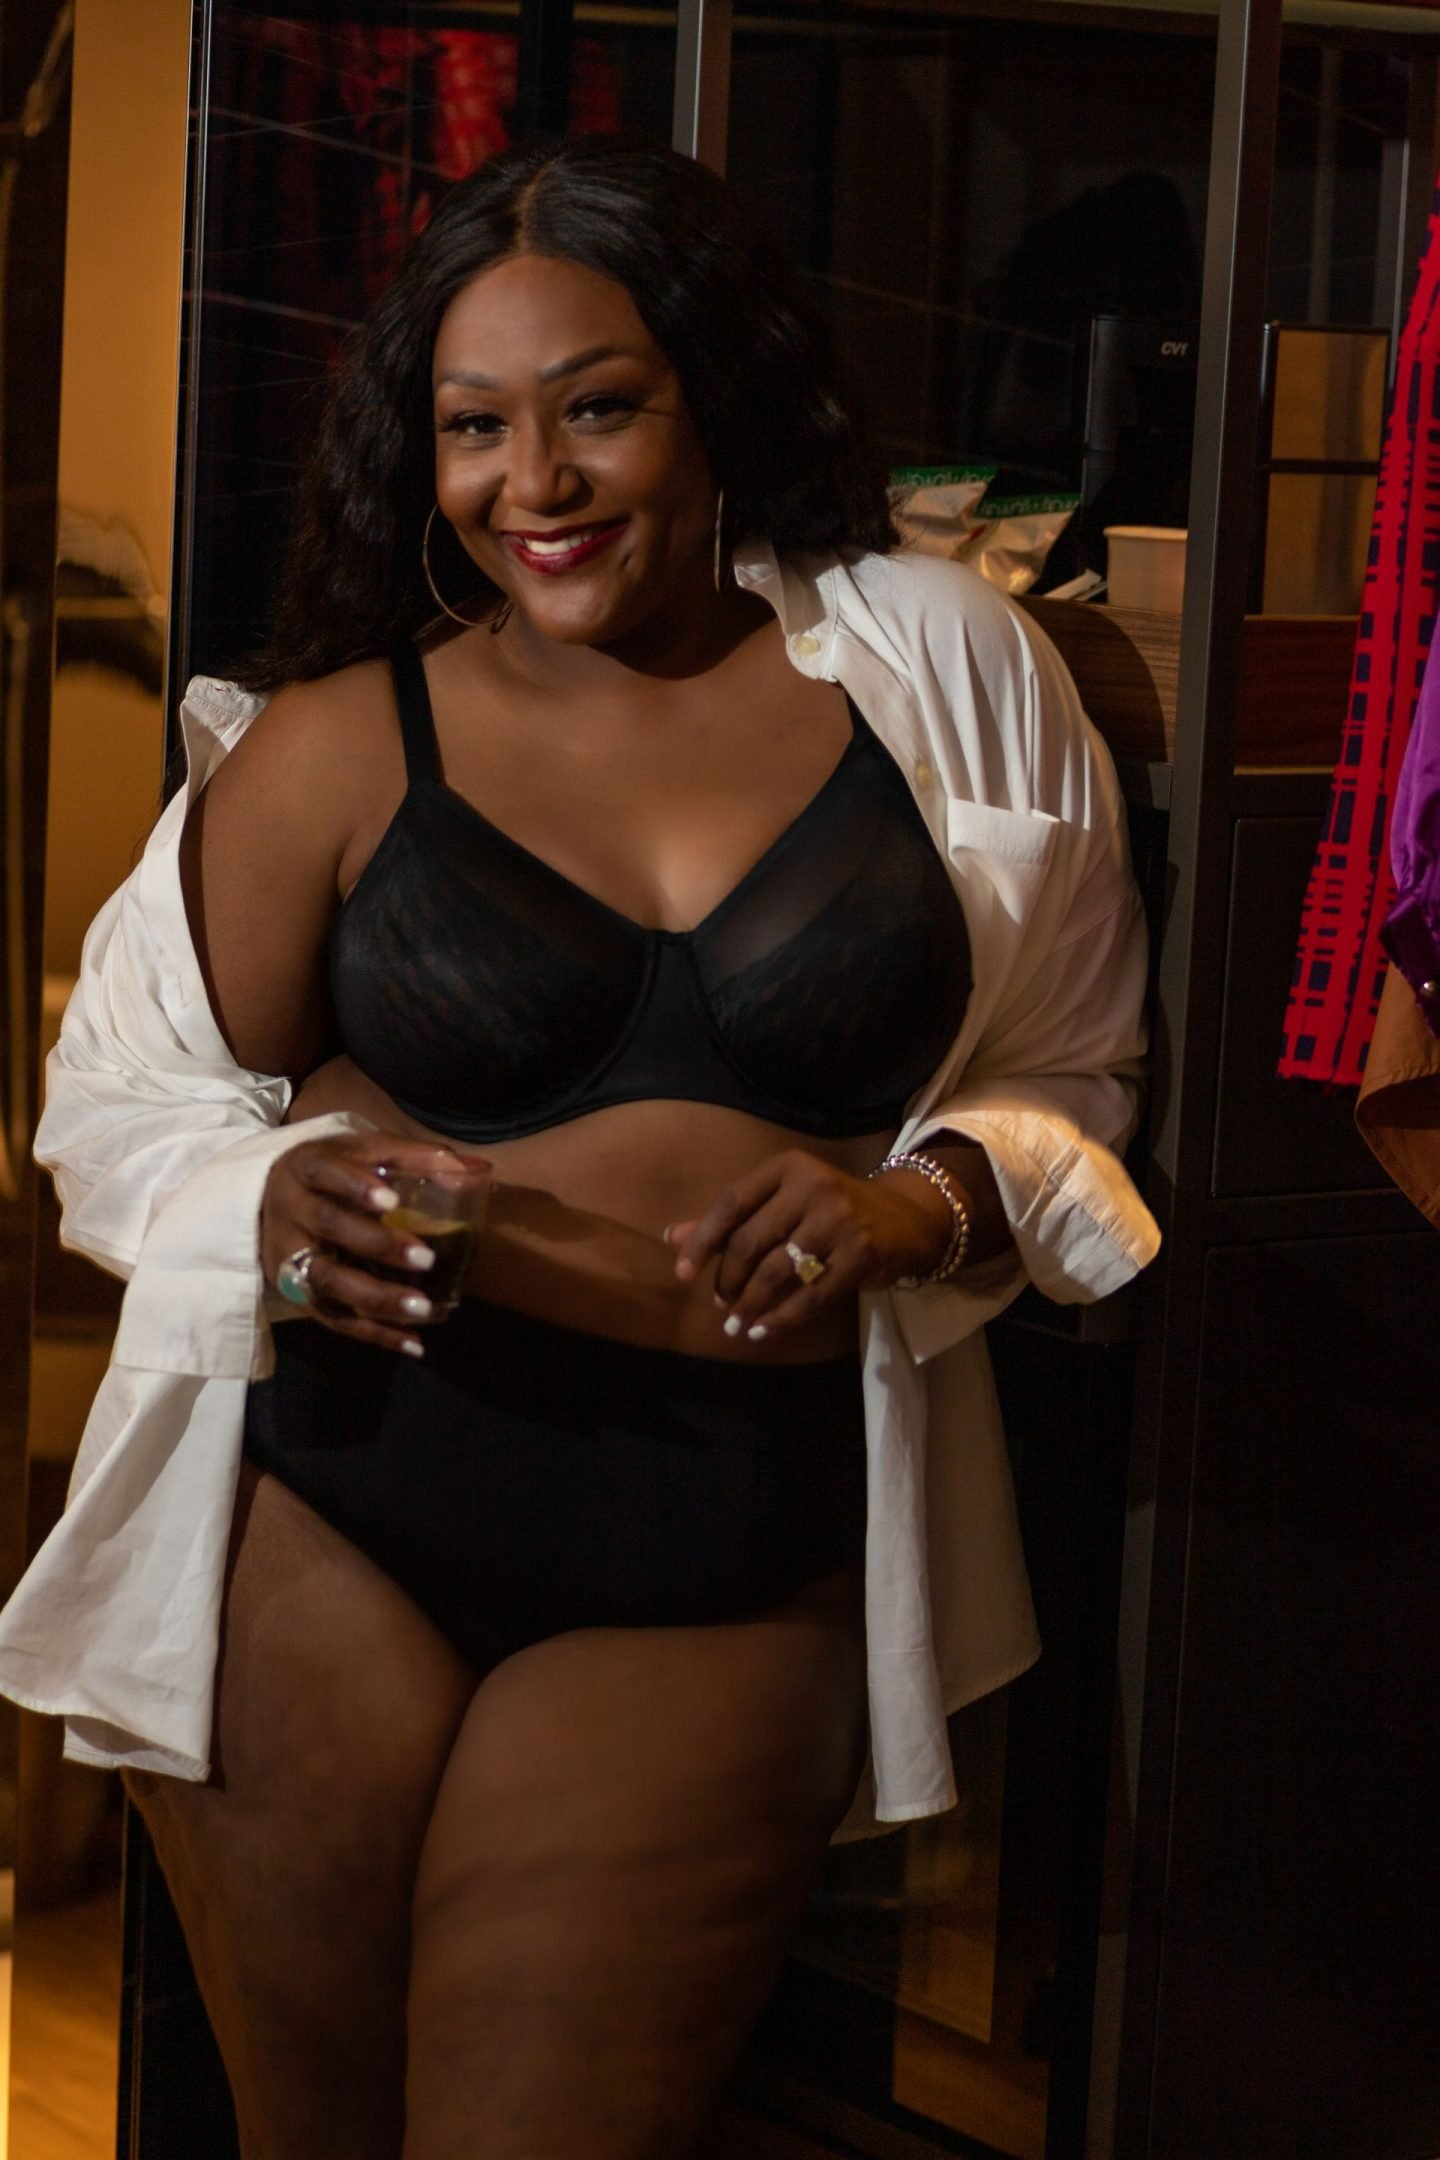 Black blogger sipping a cocktail wearing undergarments